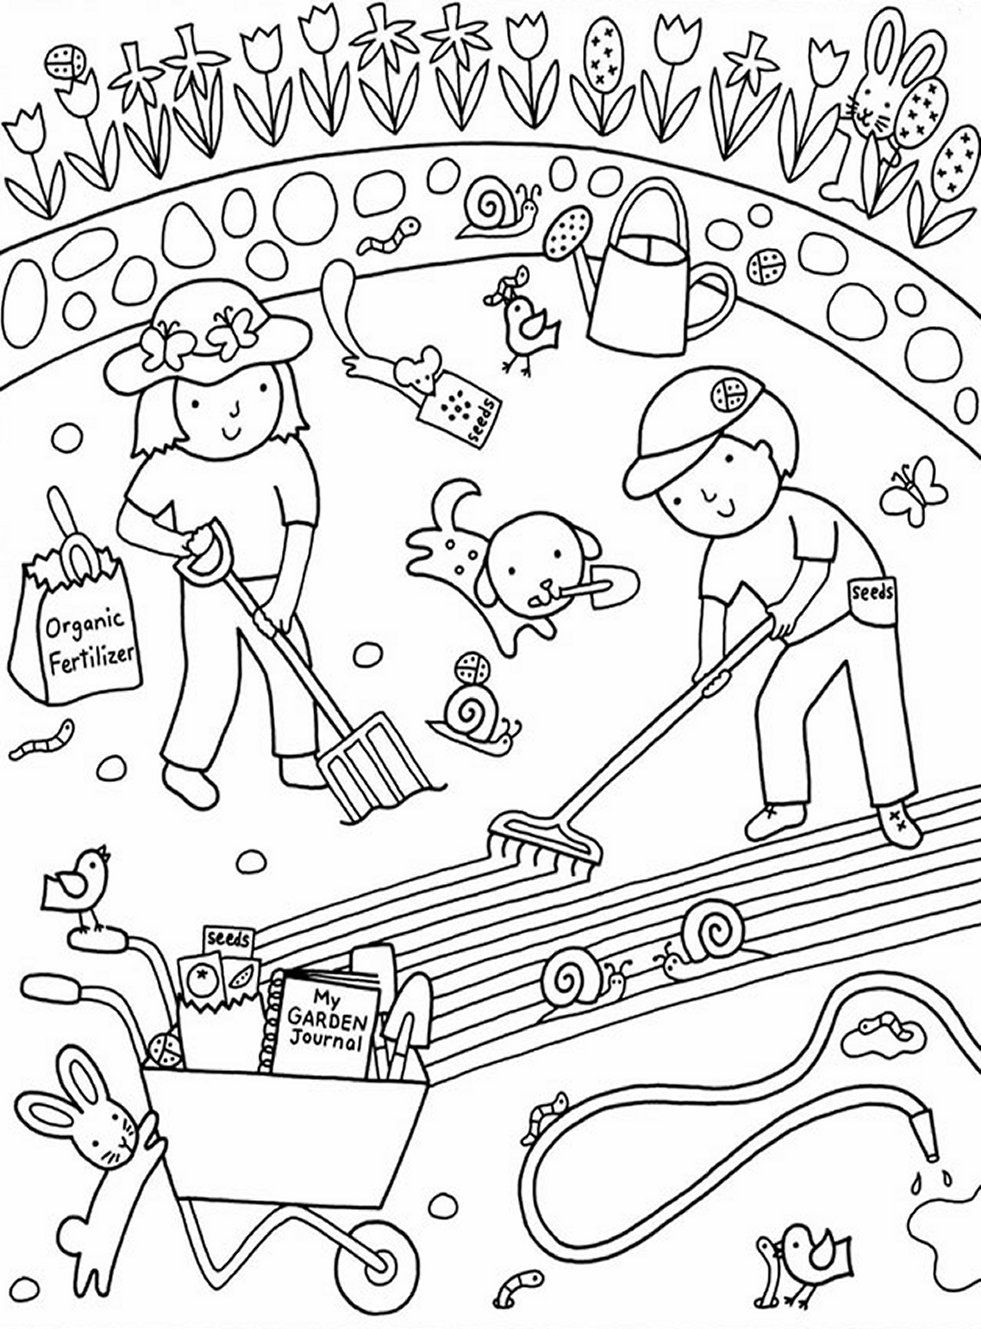 Kids gardening coloring pages free colouring pictures to for Garden coloring page